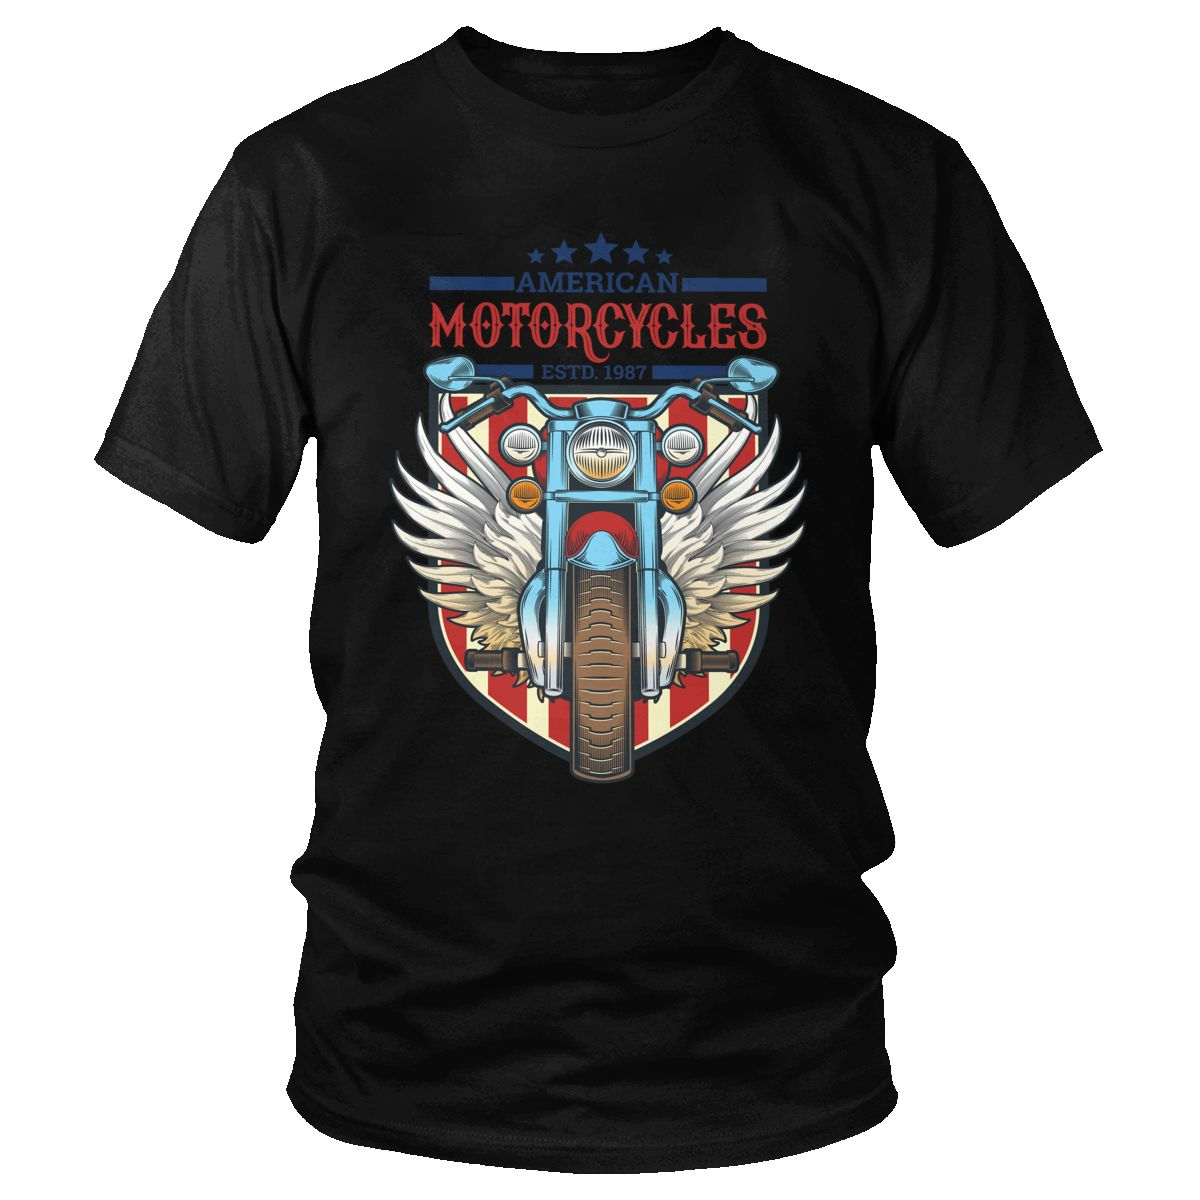 T-shirt Vintage Motorcycle